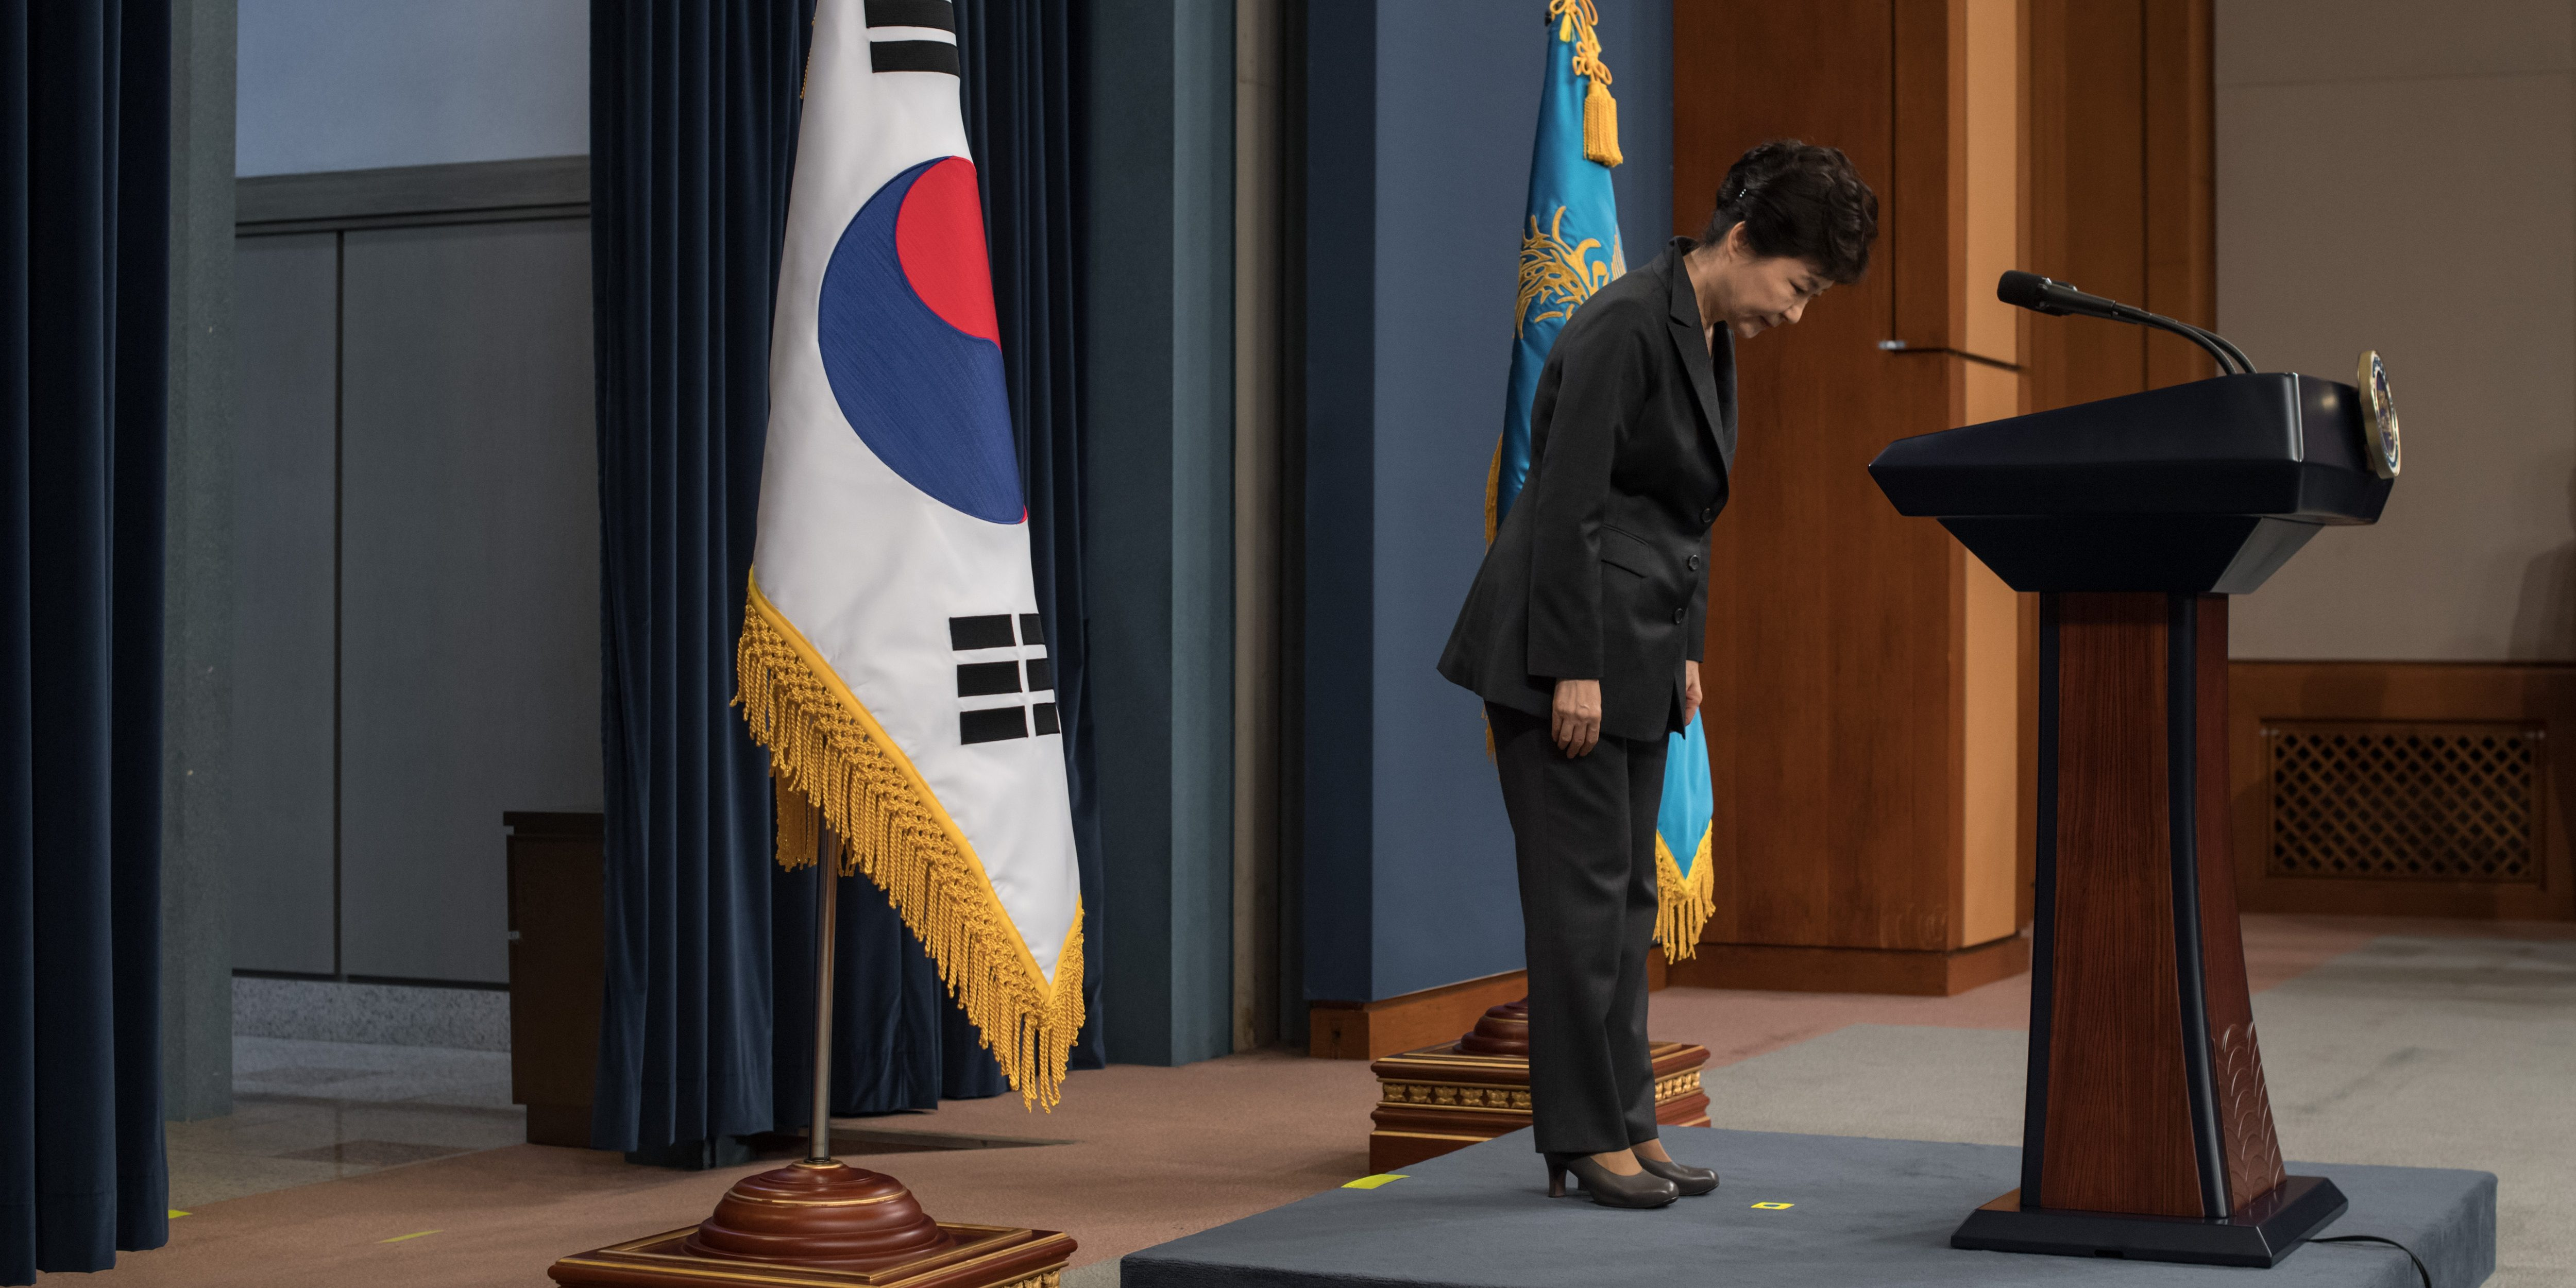 South Korean President Park Geun-Hye bows prior to delivering an address to the nation, at the presidential Blue House in Seoul, South Korea, 04 November 2016. Park agreed to submit to questioning by prosecutors investigating a corruption scandal engulfing her administration, accepting that the damaging fallout was 'all my fault.' In a televised address to the nation, Park denied some of the more lurid rumors surrounding the scandal -- including reports that she had fallen into a religious cult and conducted shamanist rituals in the presidential Blue House.  EPA/ED JONES/POOL